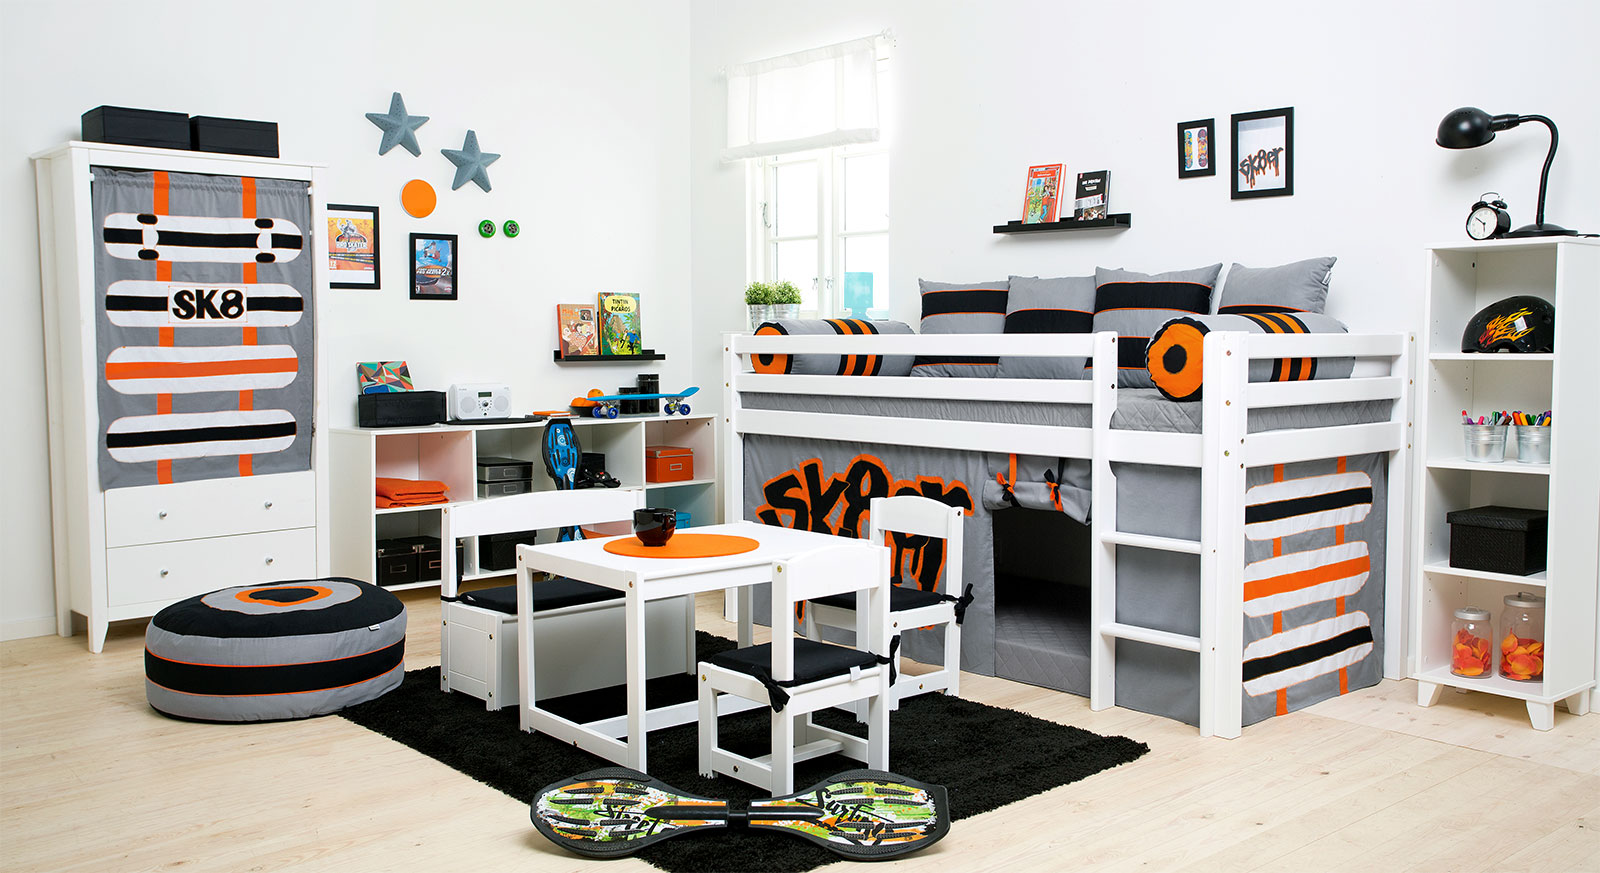 cooles kinderzimmer f r jungs mit viel zubeh r skater. Black Bedroom Furniture Sets. Home Design Ideas